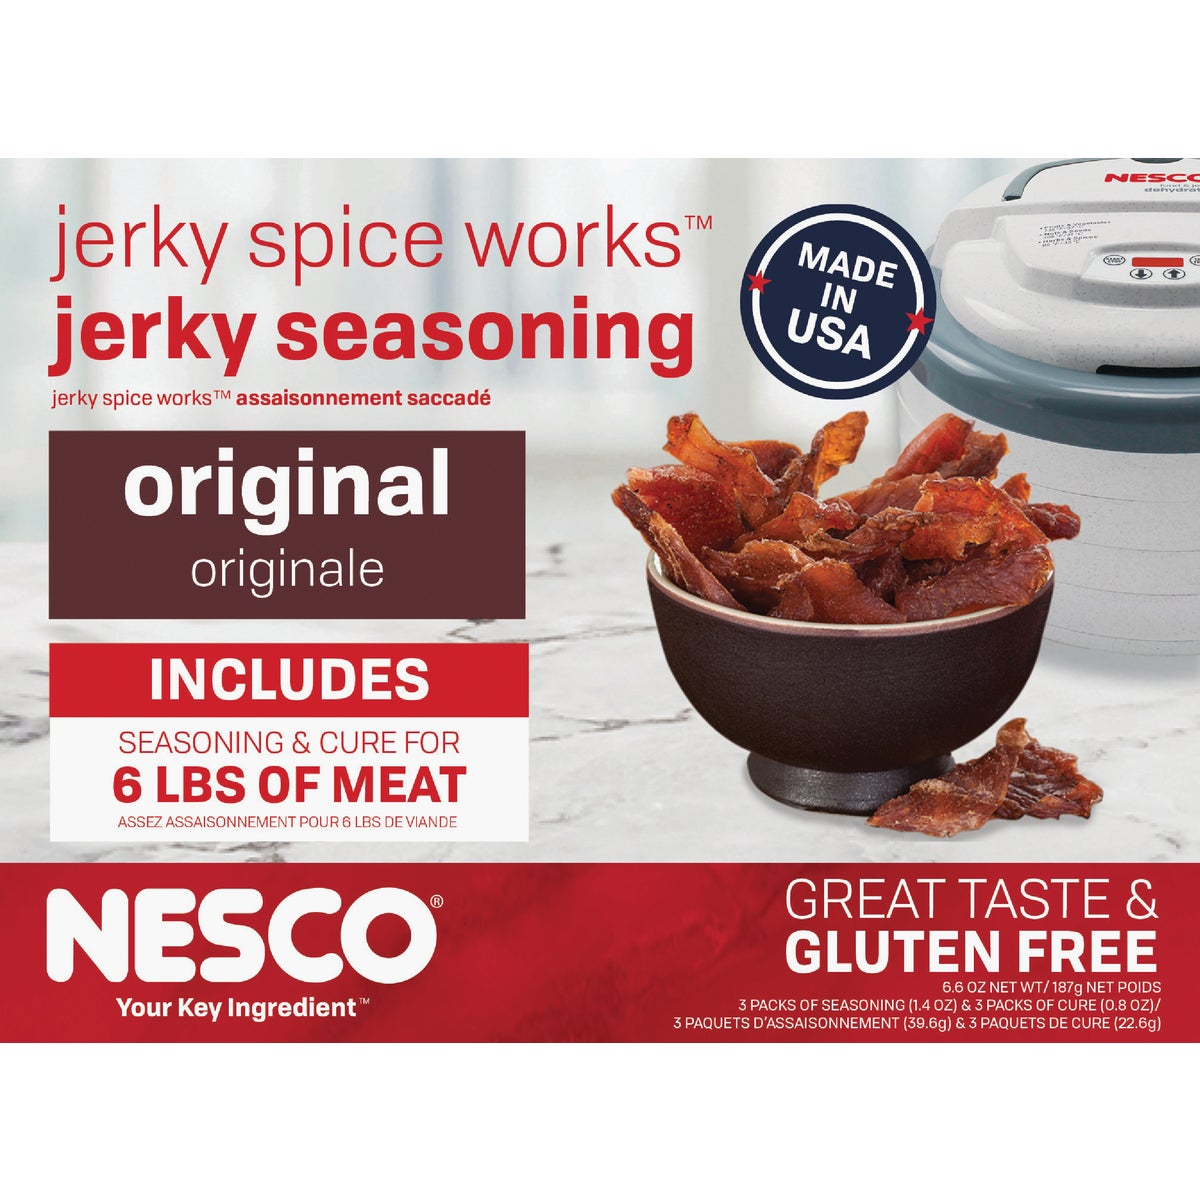 6CT JERKY SPICES - BJ-6 by Metal Ware Corp